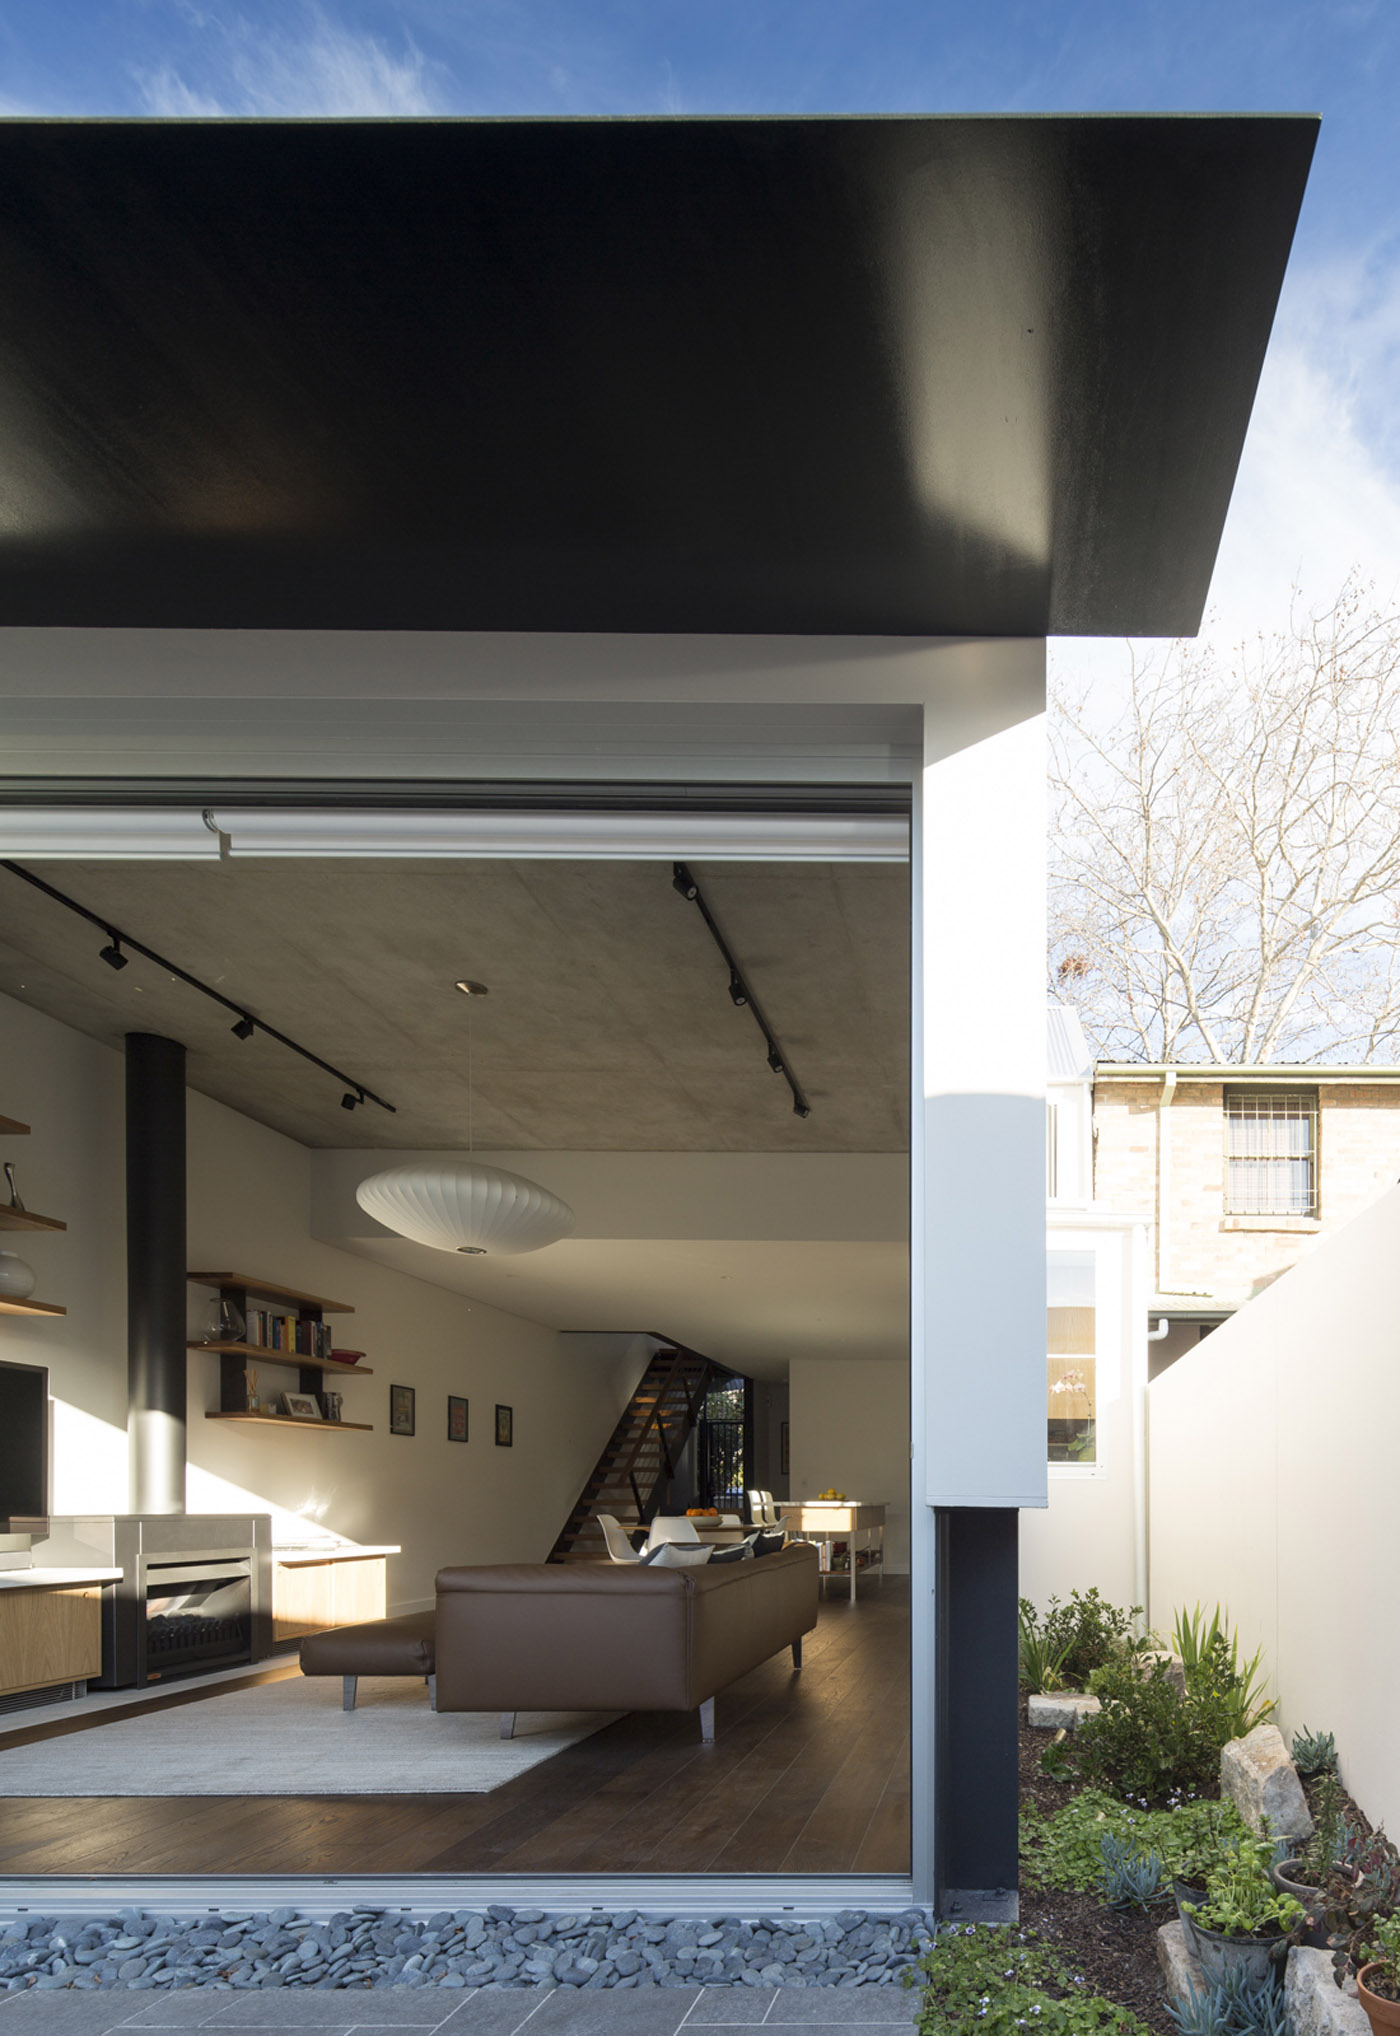 Gandha Kariappa Terrace by Sydney residential architects Sam Crawford Architects. View to ground floor living space from backyard